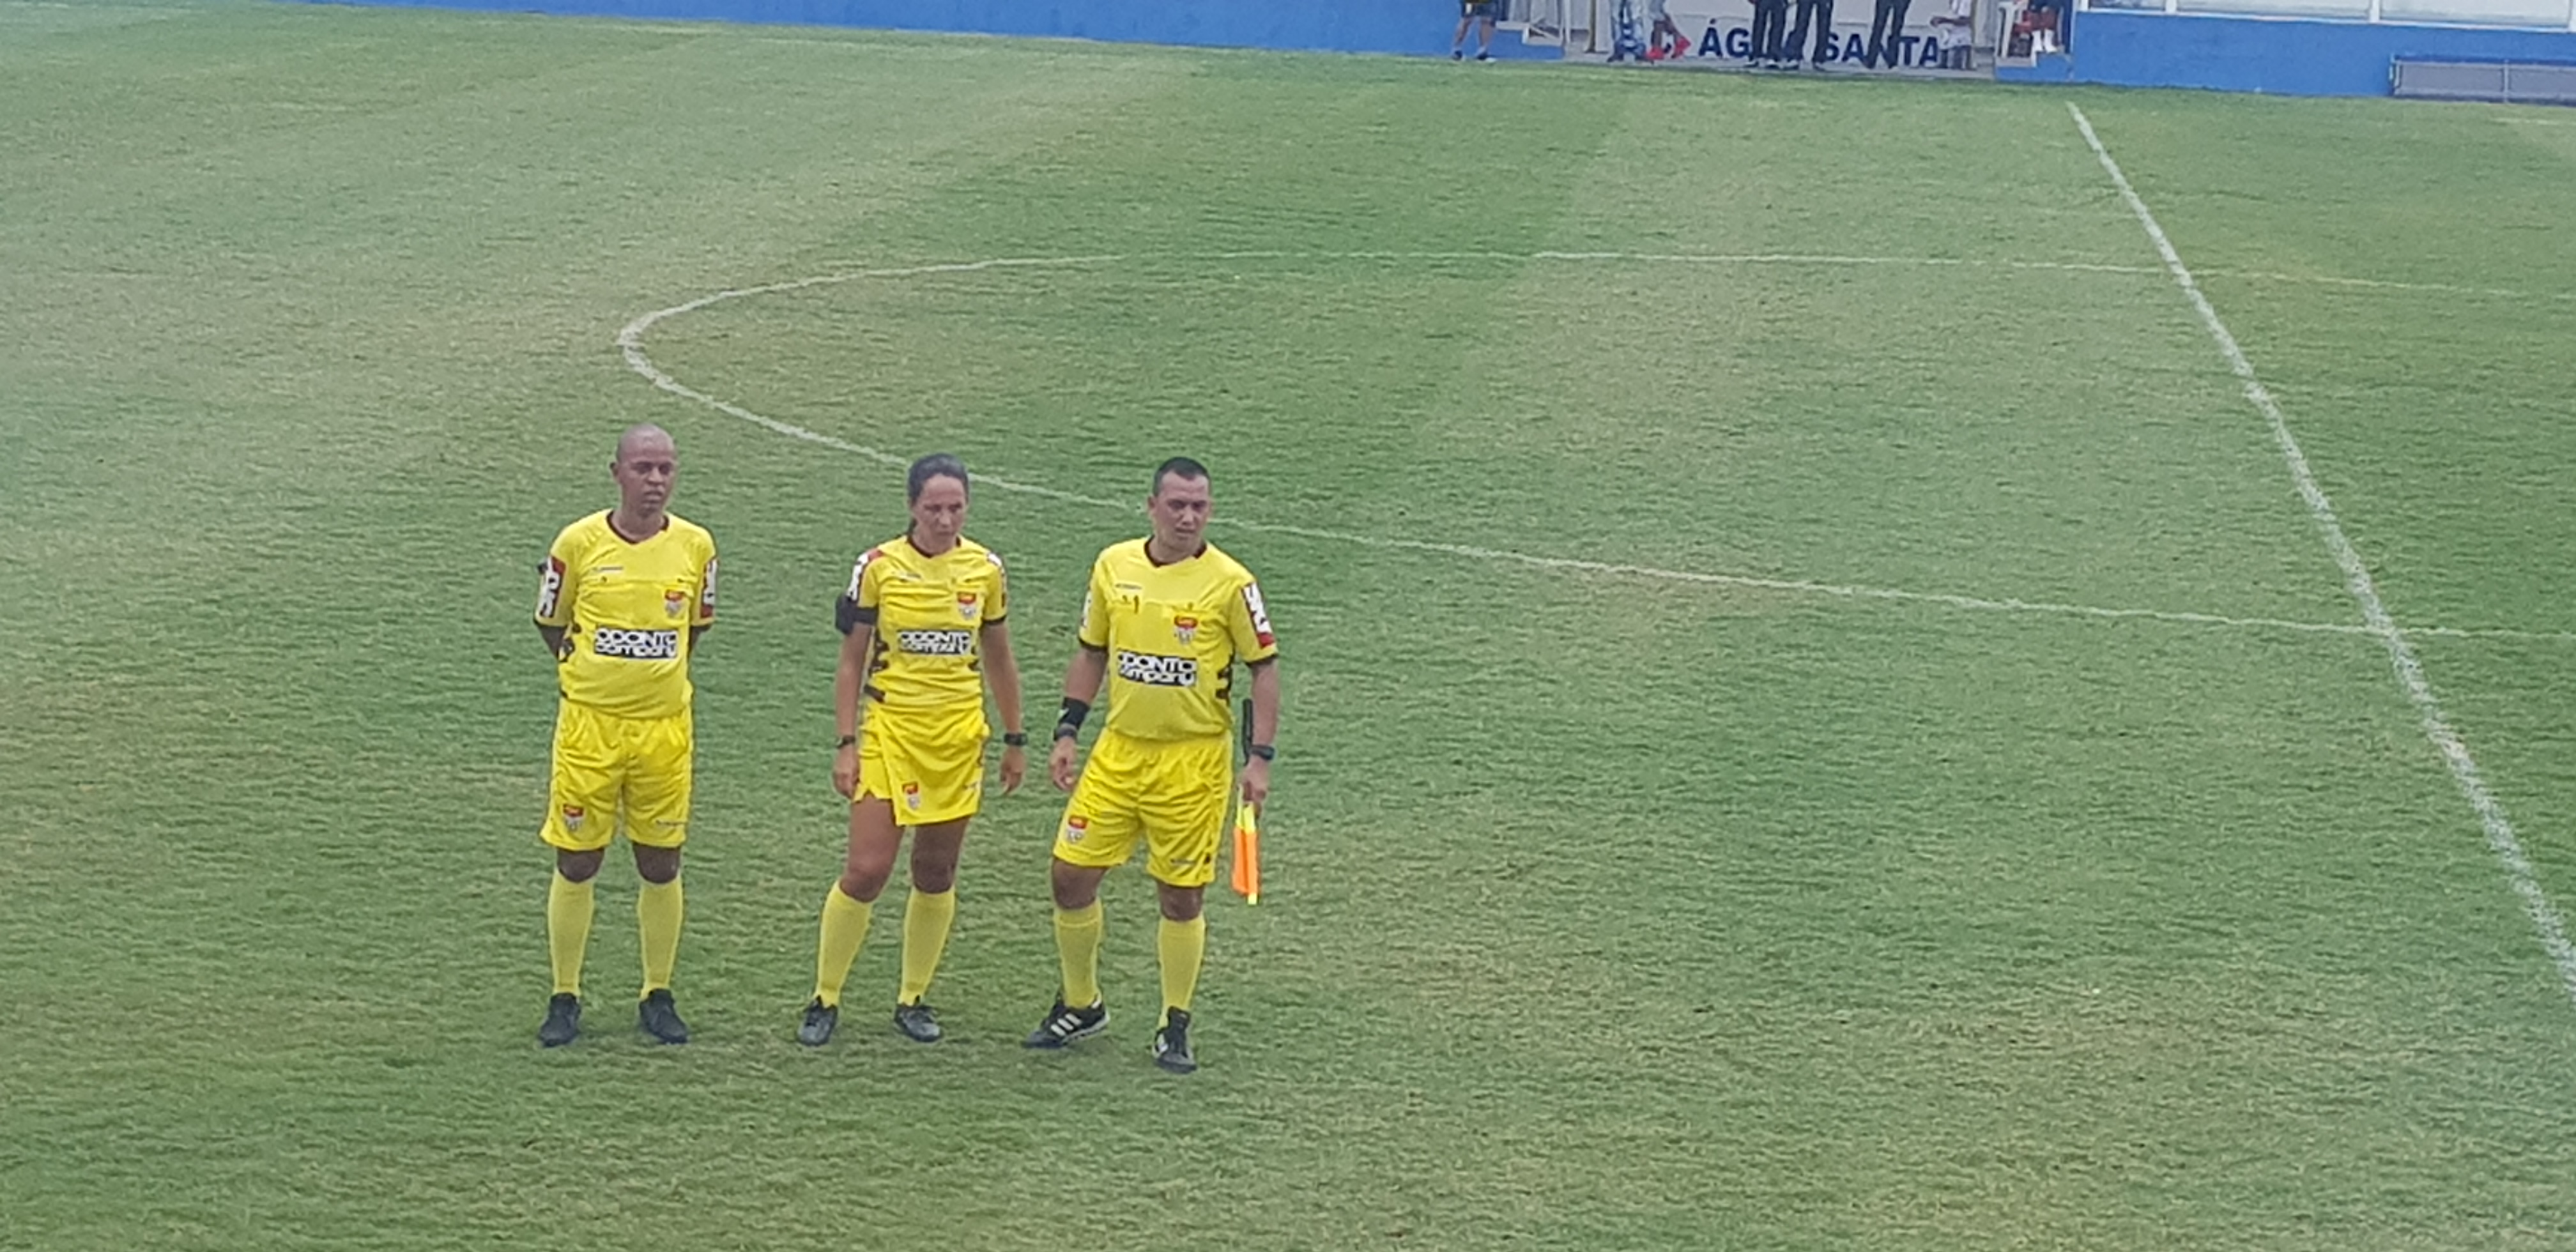 Adeli Mara Monteiro, 34, was the referee in charge of the Copinha 2019 game between Água Santa and Jacobina